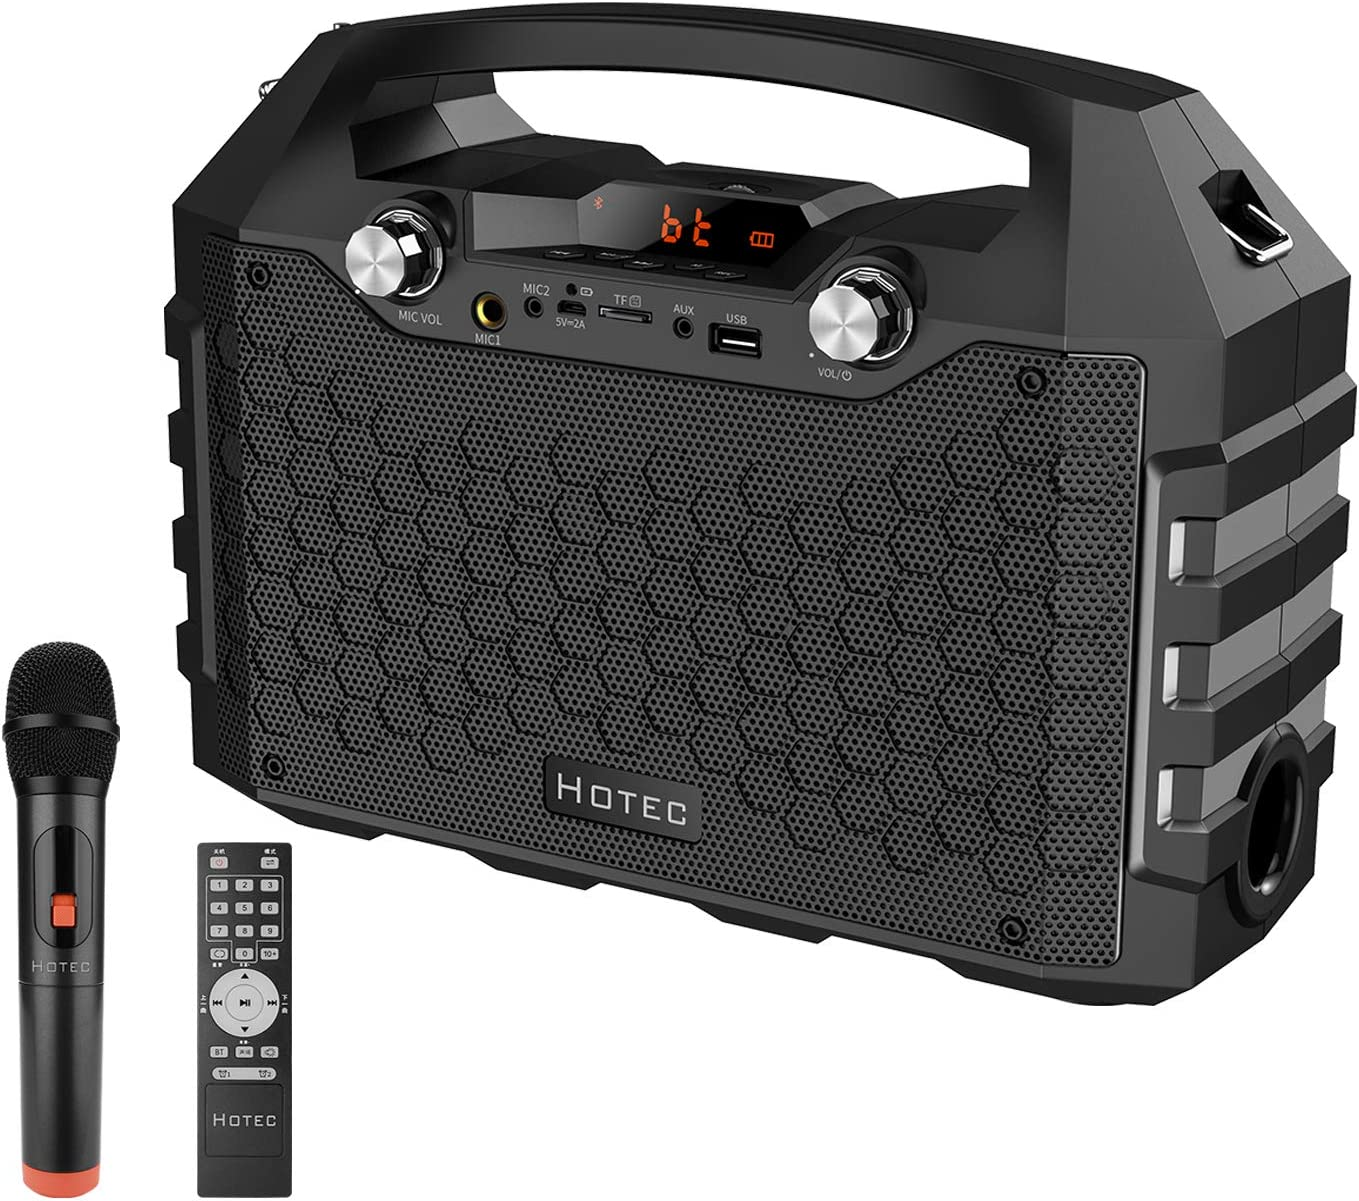 Hotec Wireless Portable PA Speaker System, Powerful Bluetooth Karaoke Machine with Wireless Microphone for Wedding, Party, Teaching, Karaoke, other Outdoor and Indoor Activities